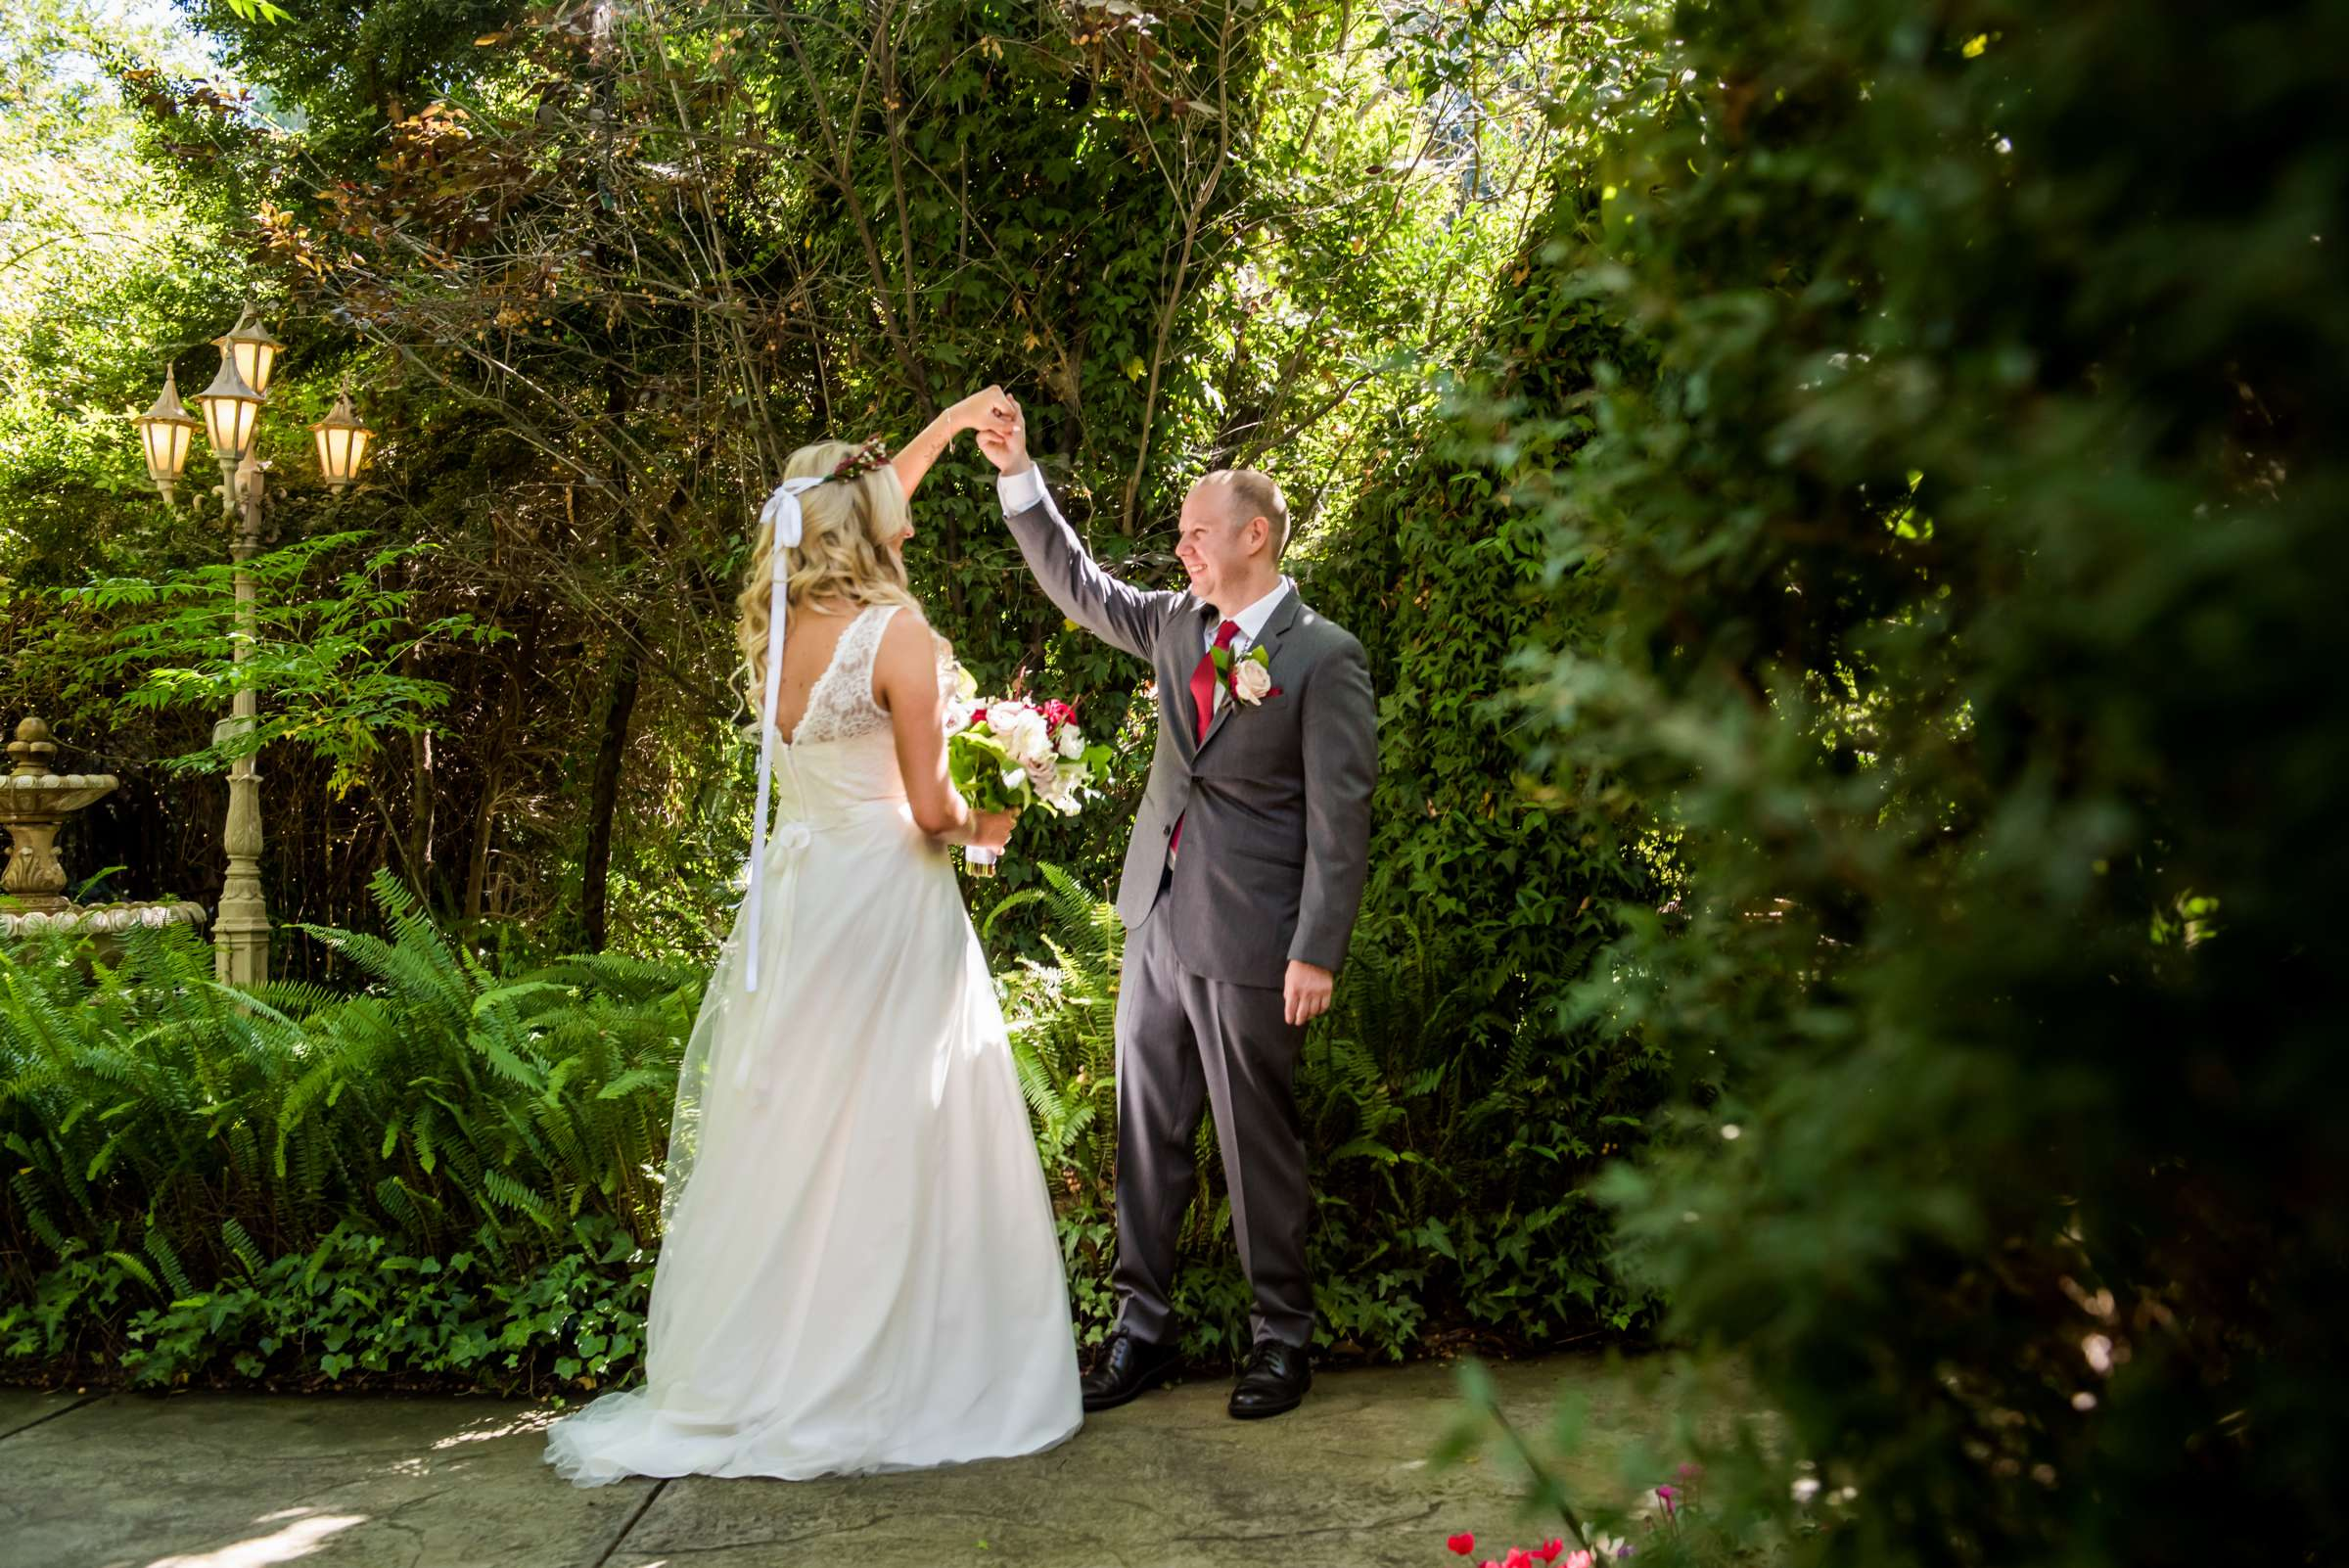 Twin Oaks House & Gardens Wedding Estate Wedding, Brittany and Sean Wedding Photo #61 by True Photography